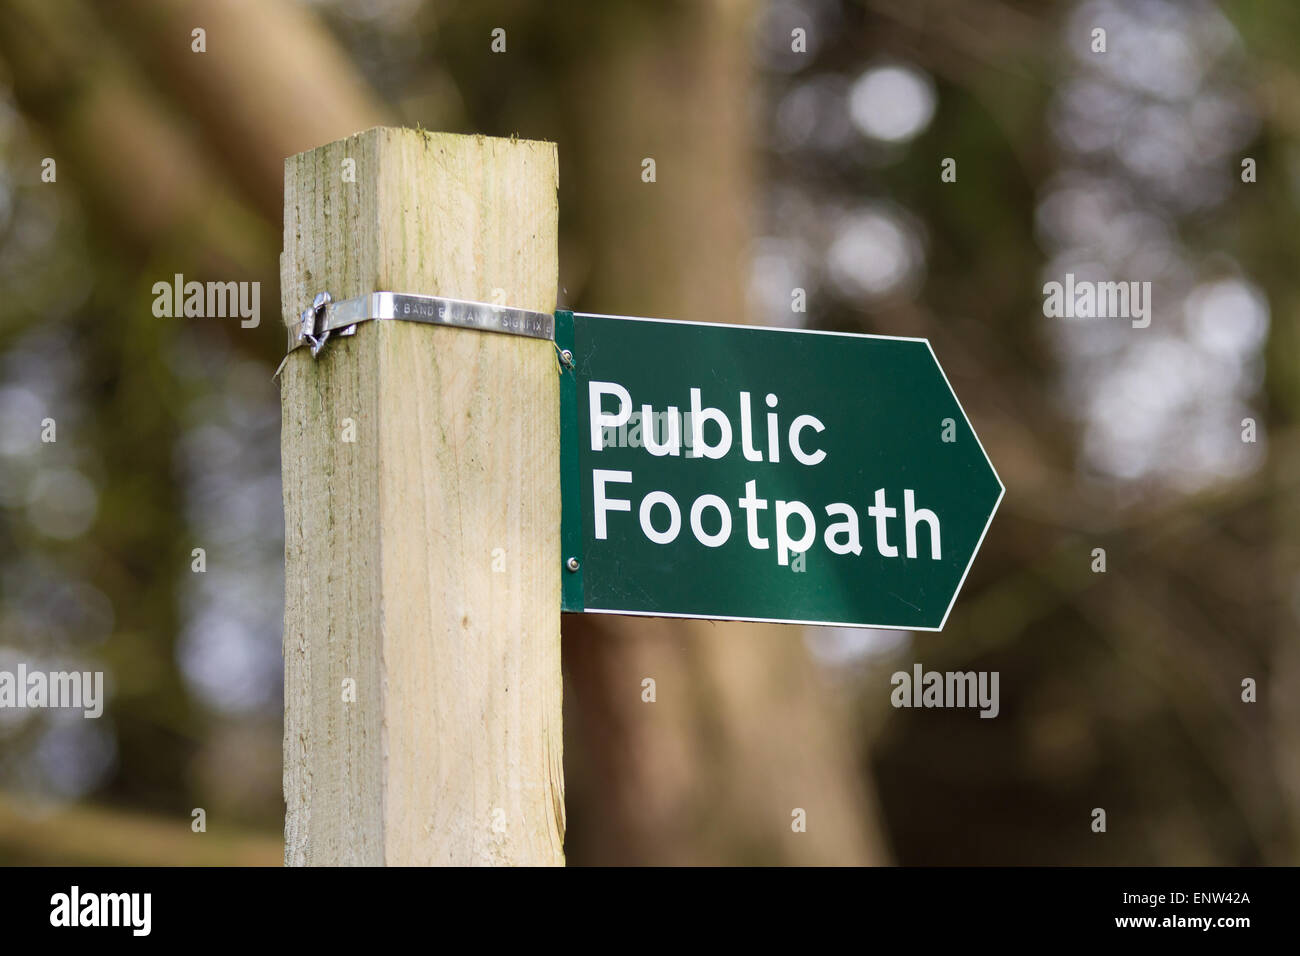 Public Footpath Sign In English Stock Photos Amp Public